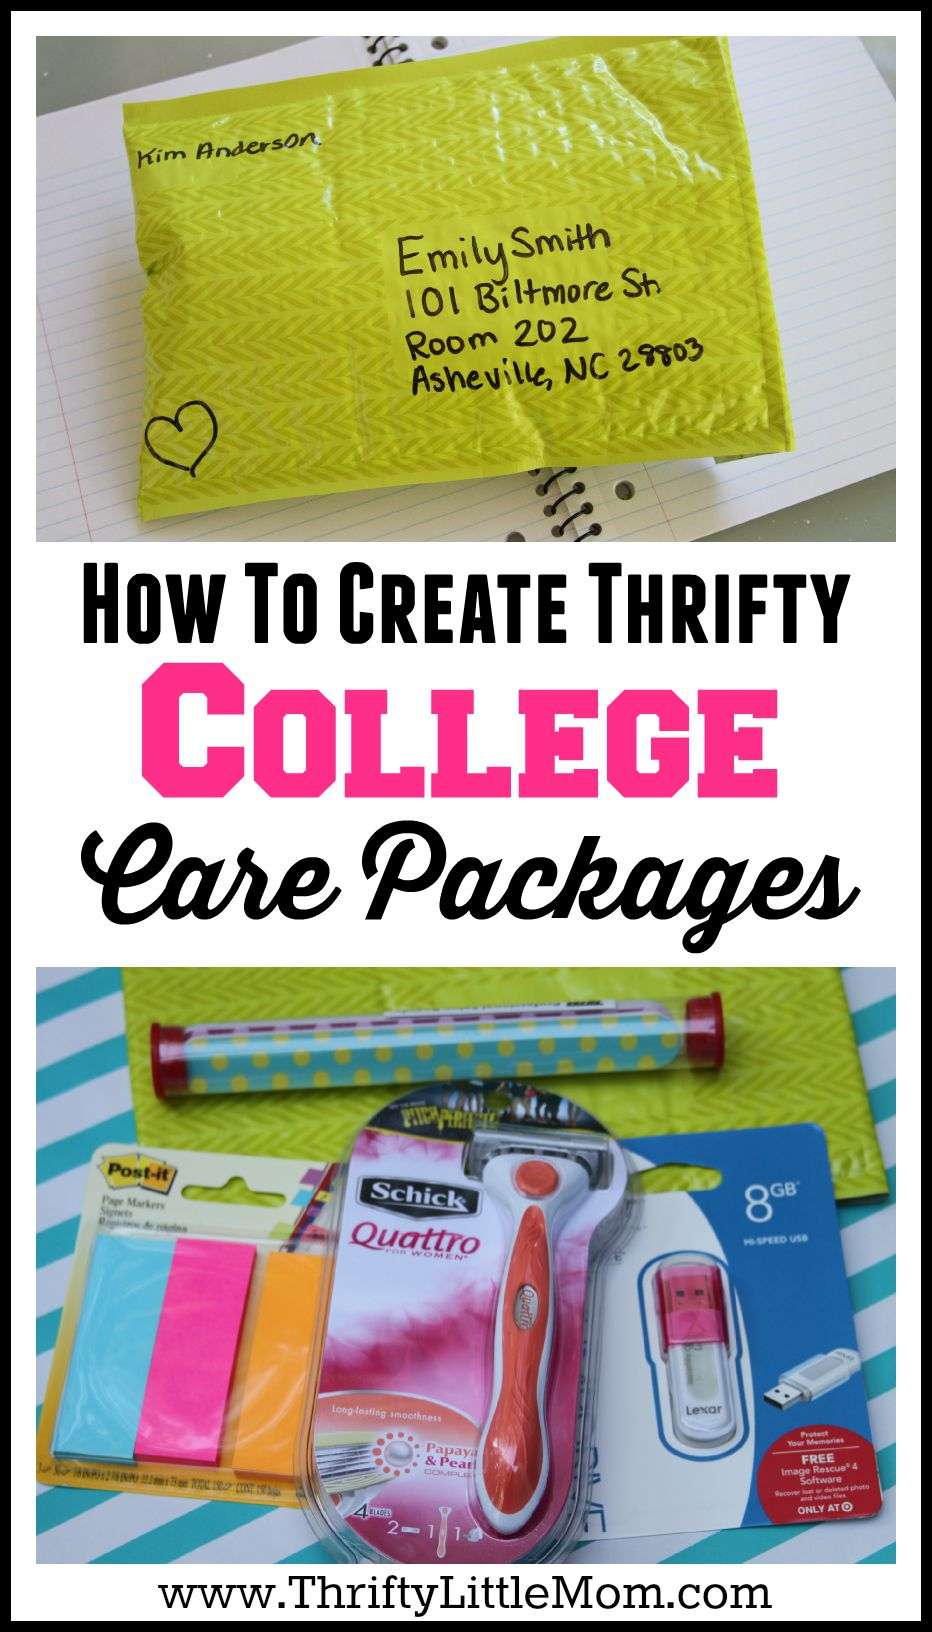 How To Create Thrifty College Care Packages